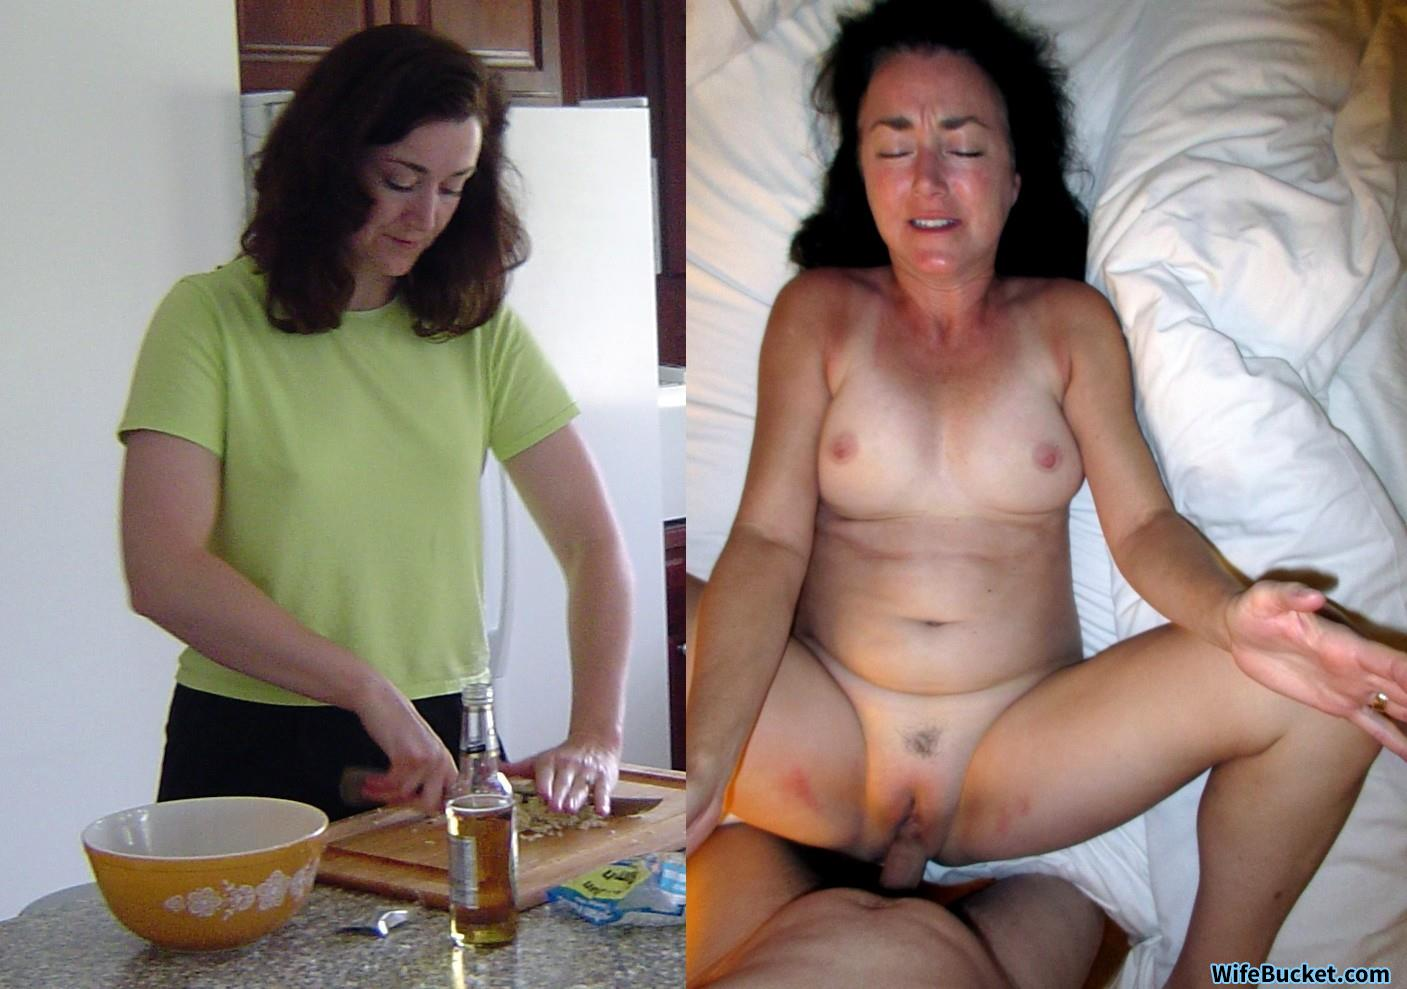 You cannot Milf nude wife before after